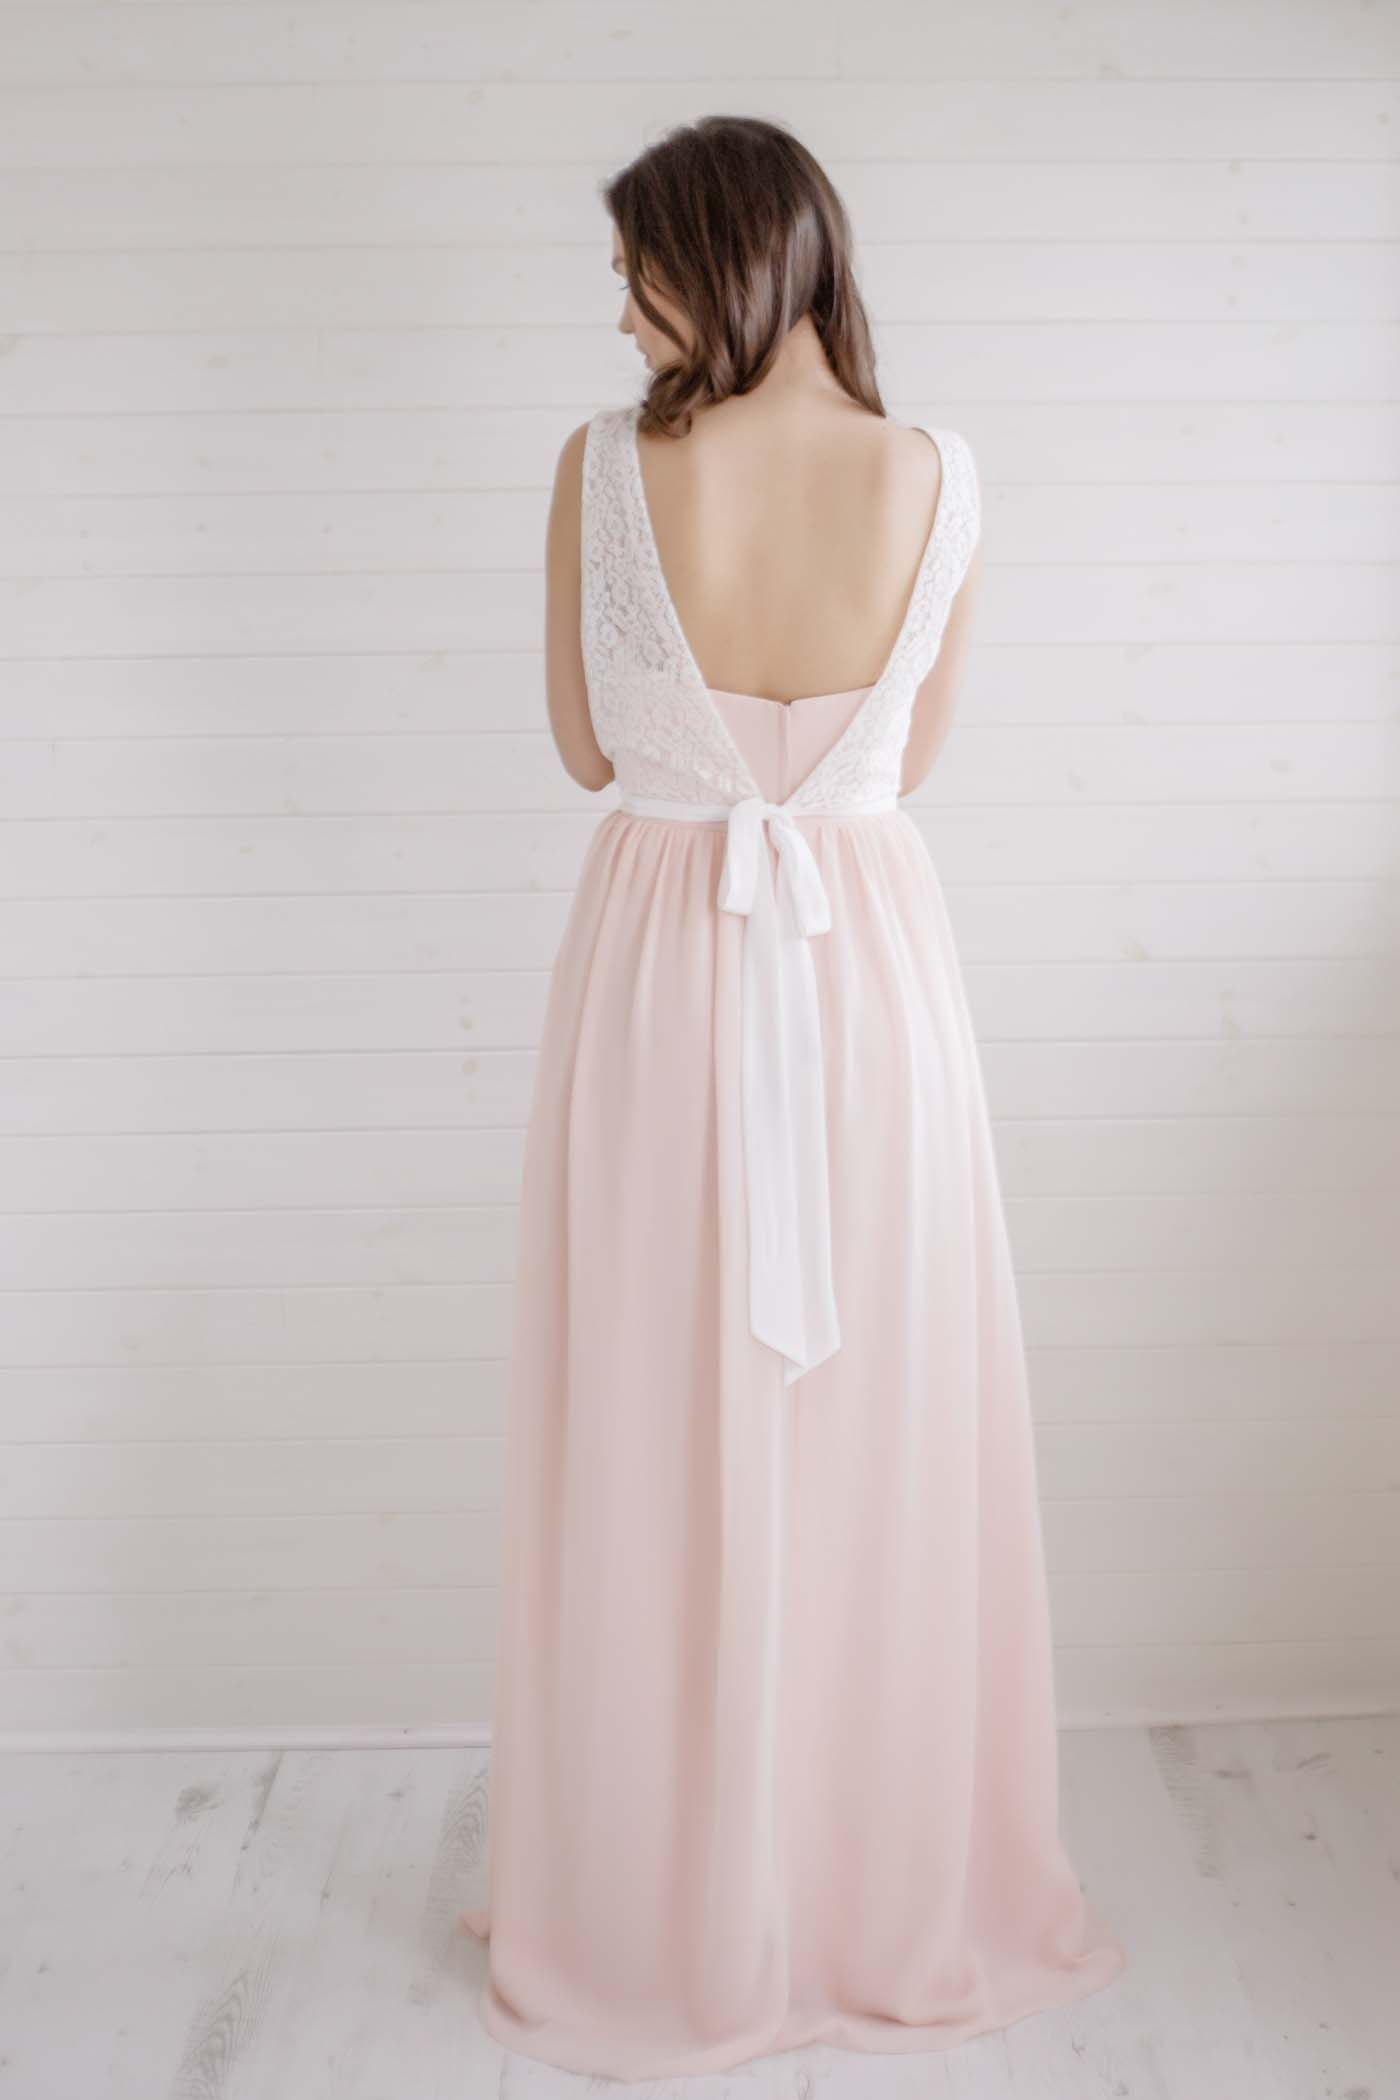 Stunning pale pink bridesmaids dress with lace jacket pale pink